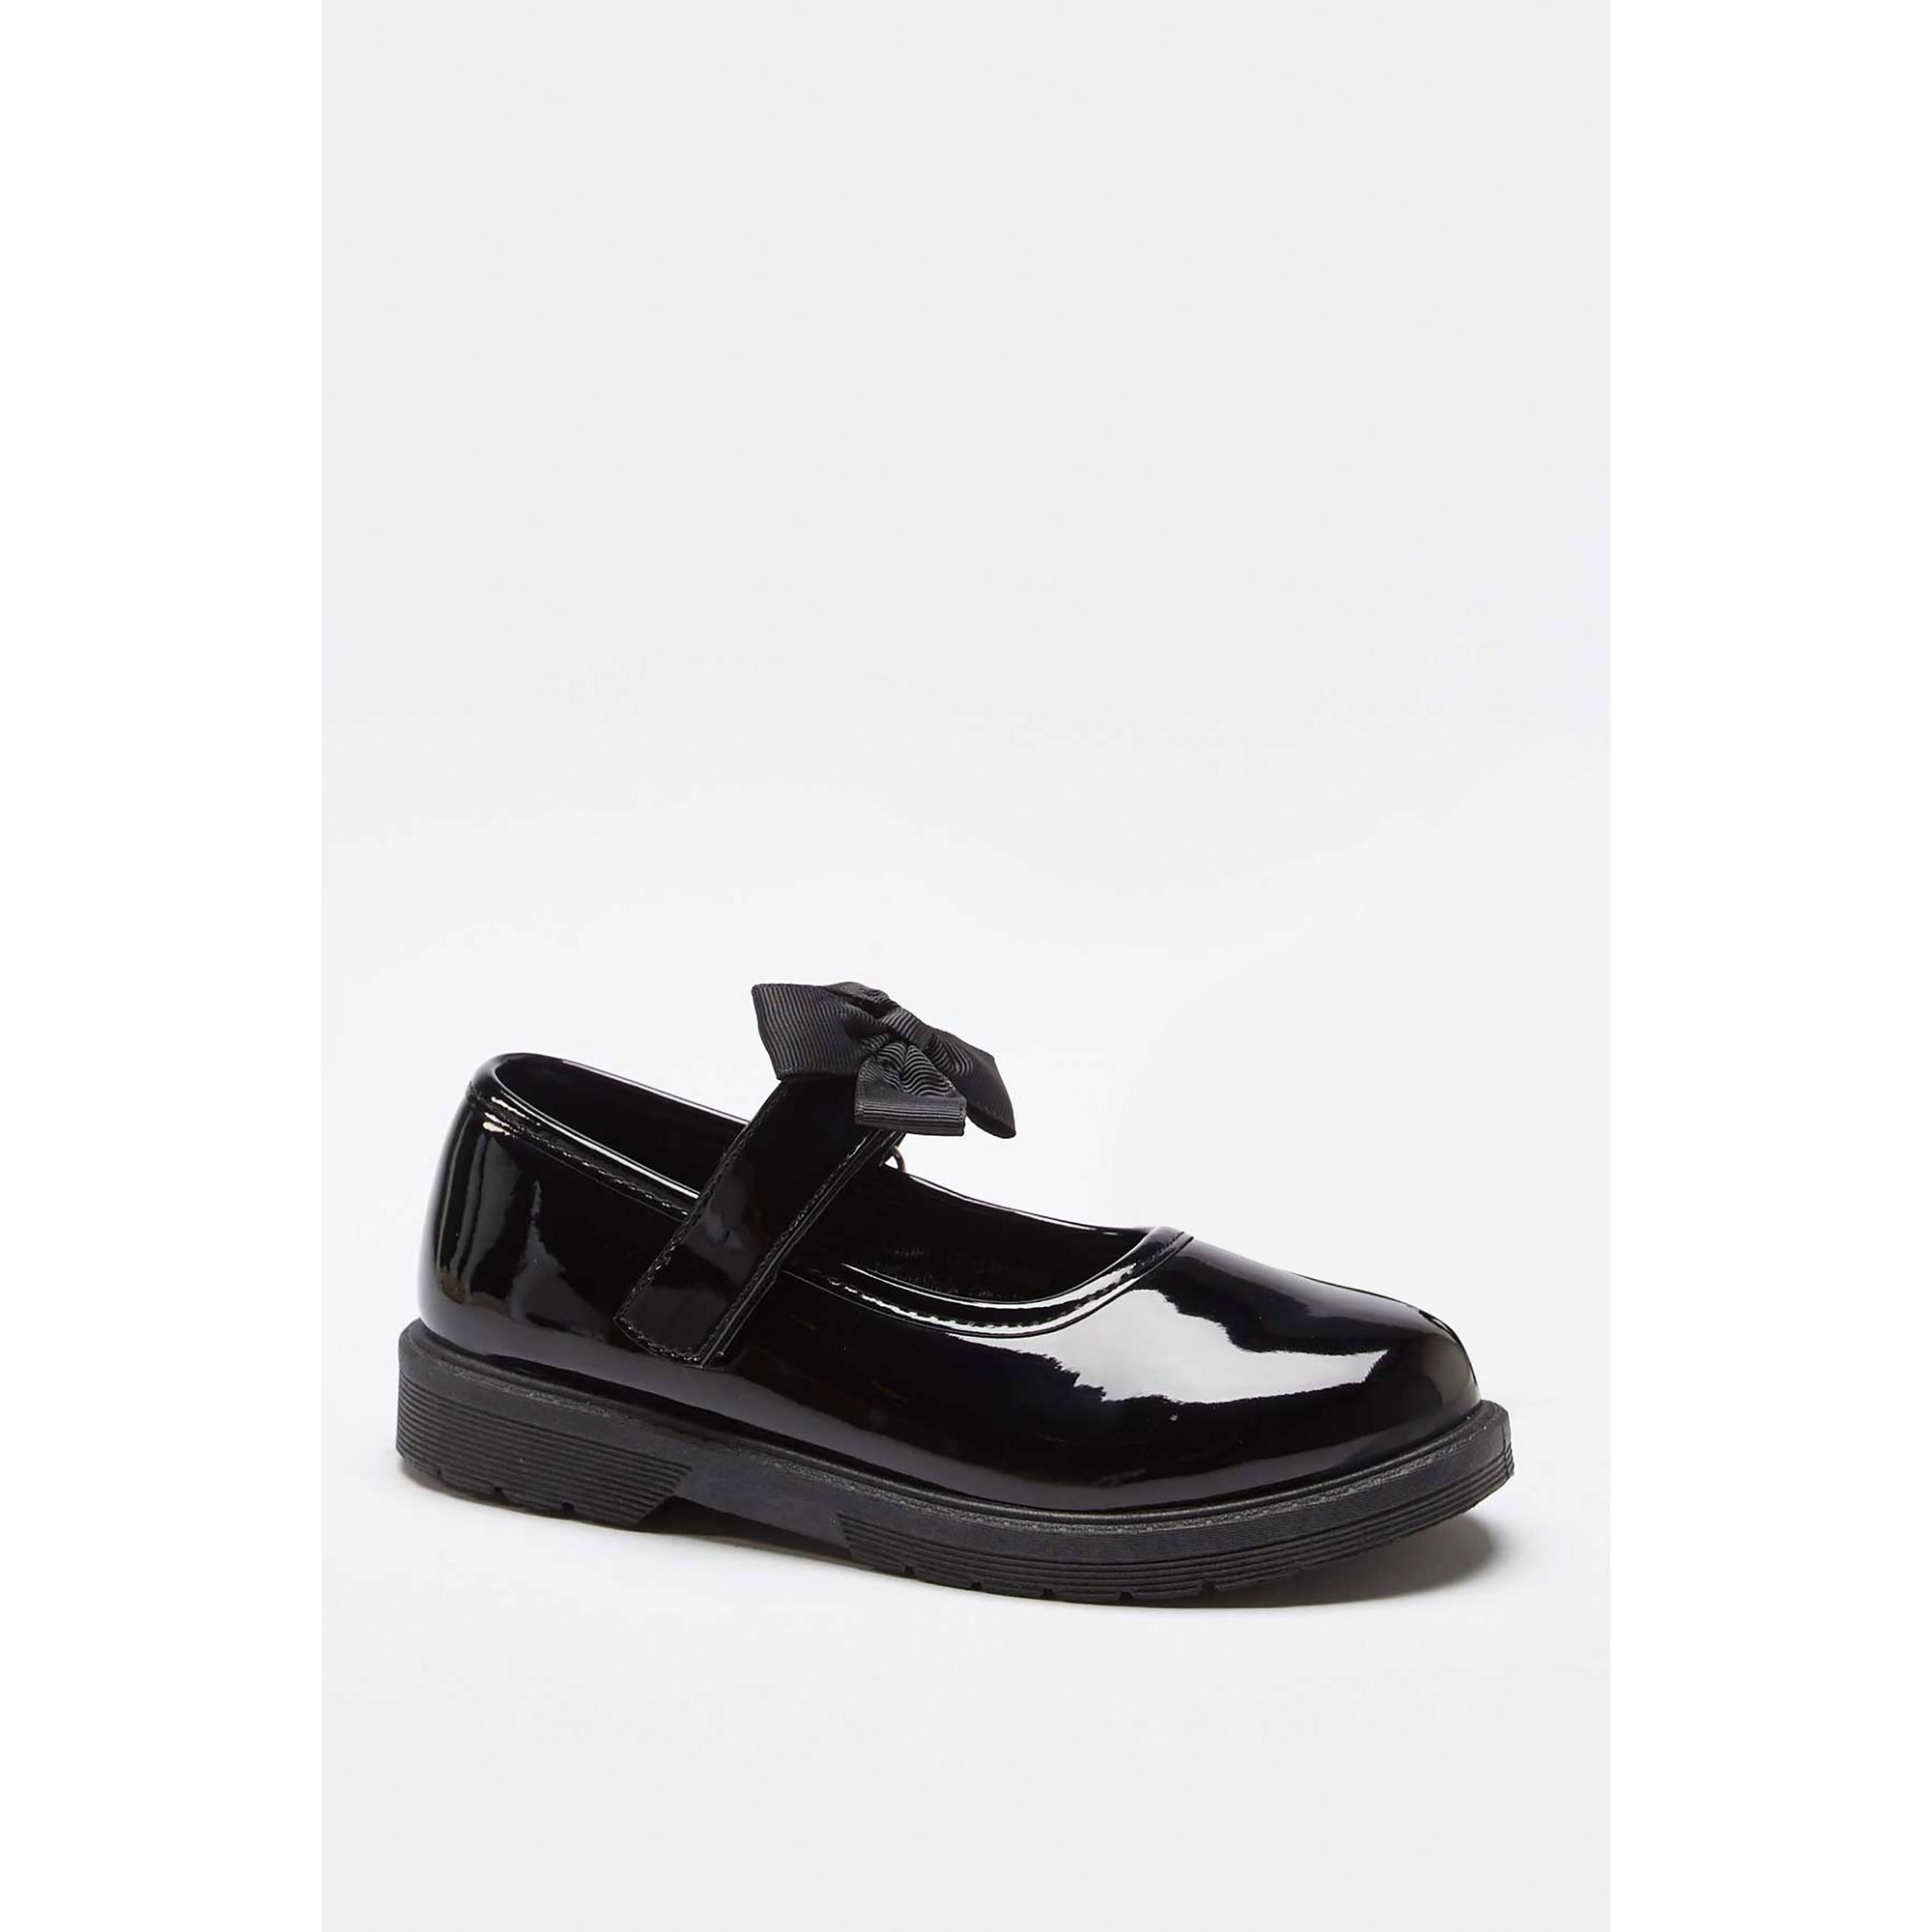 Image of Girls Chunky Bow Strap Shoes